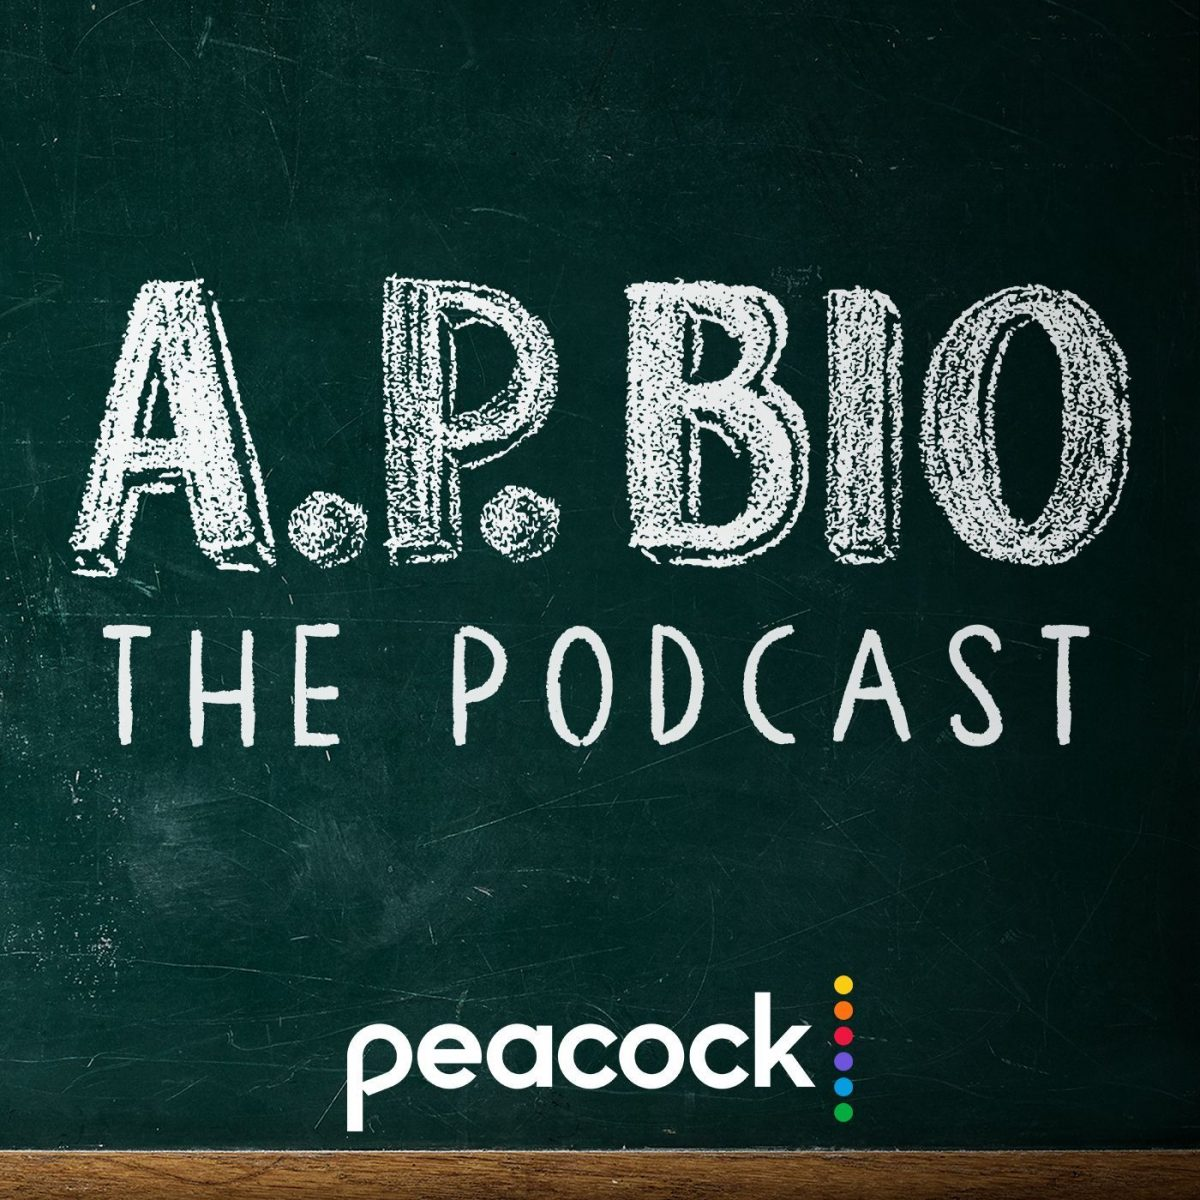 Peacock Bows Its First Podcast, for 'A.P. Bio'